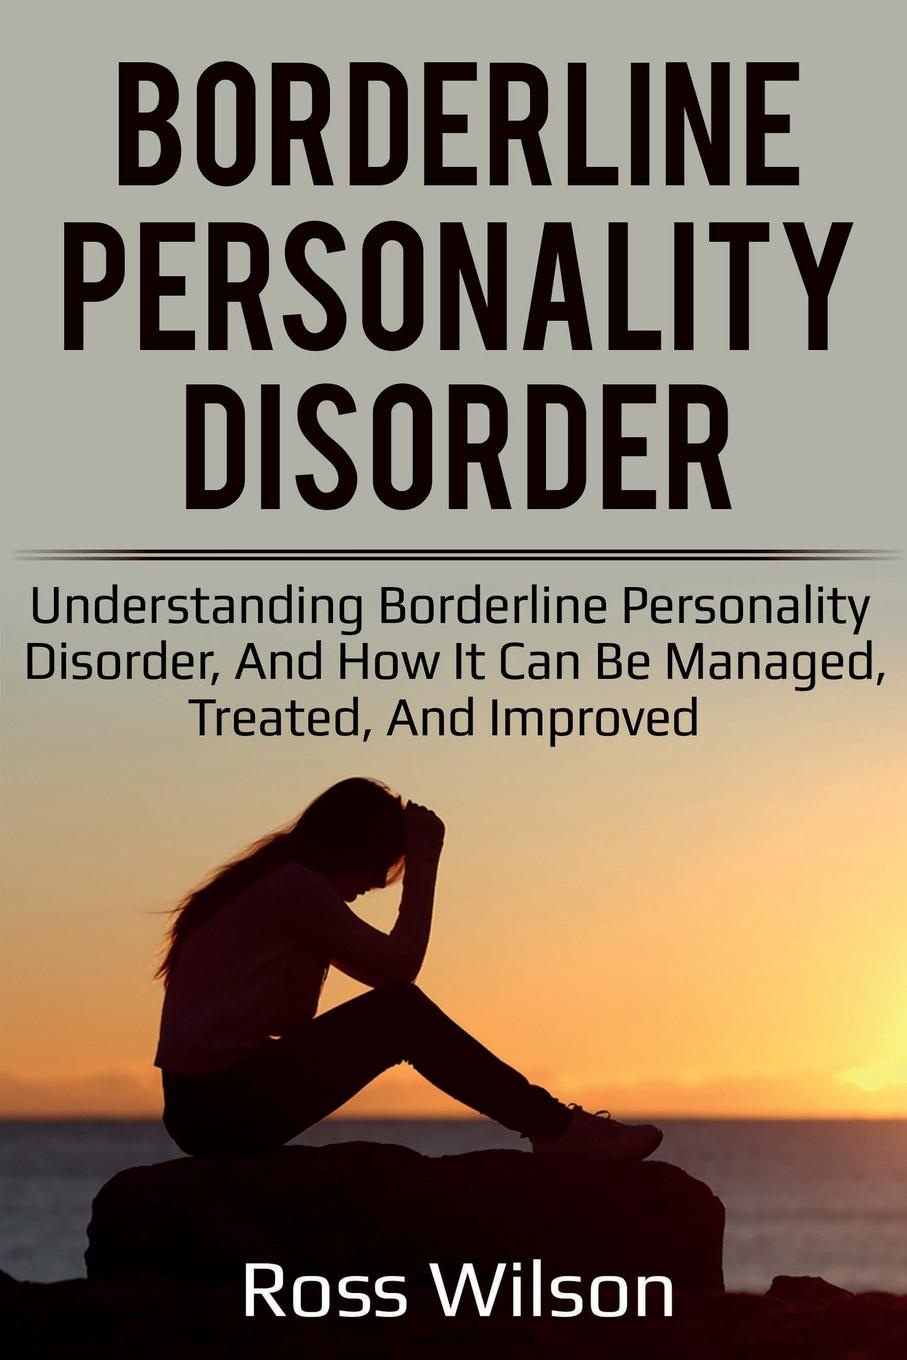 Ross Wilson Borderline Personality Disorder. Understanding Borderline Personality Disorder, and how it can be managed, treated, and improved